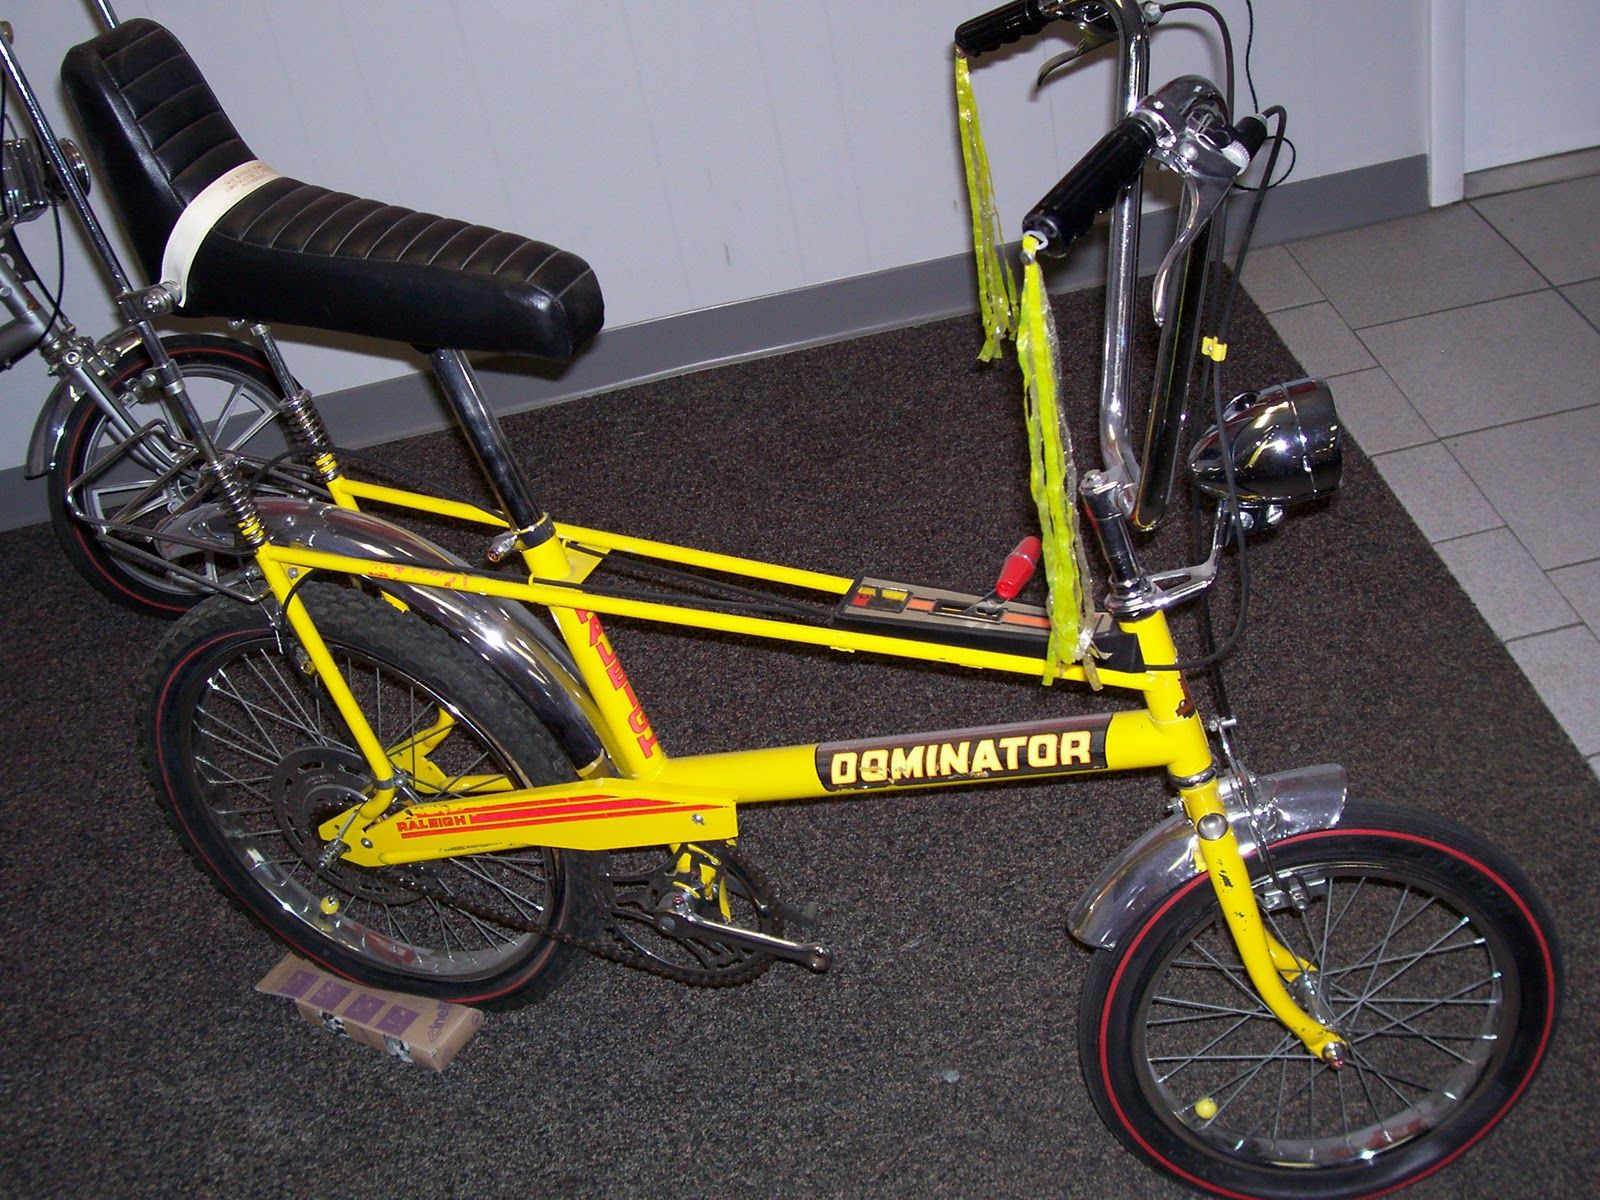 6ffceebae87 the raleigh chopper blog steve: RALEIGH DOMINATOR FIZZY LEMON 3 SPEED